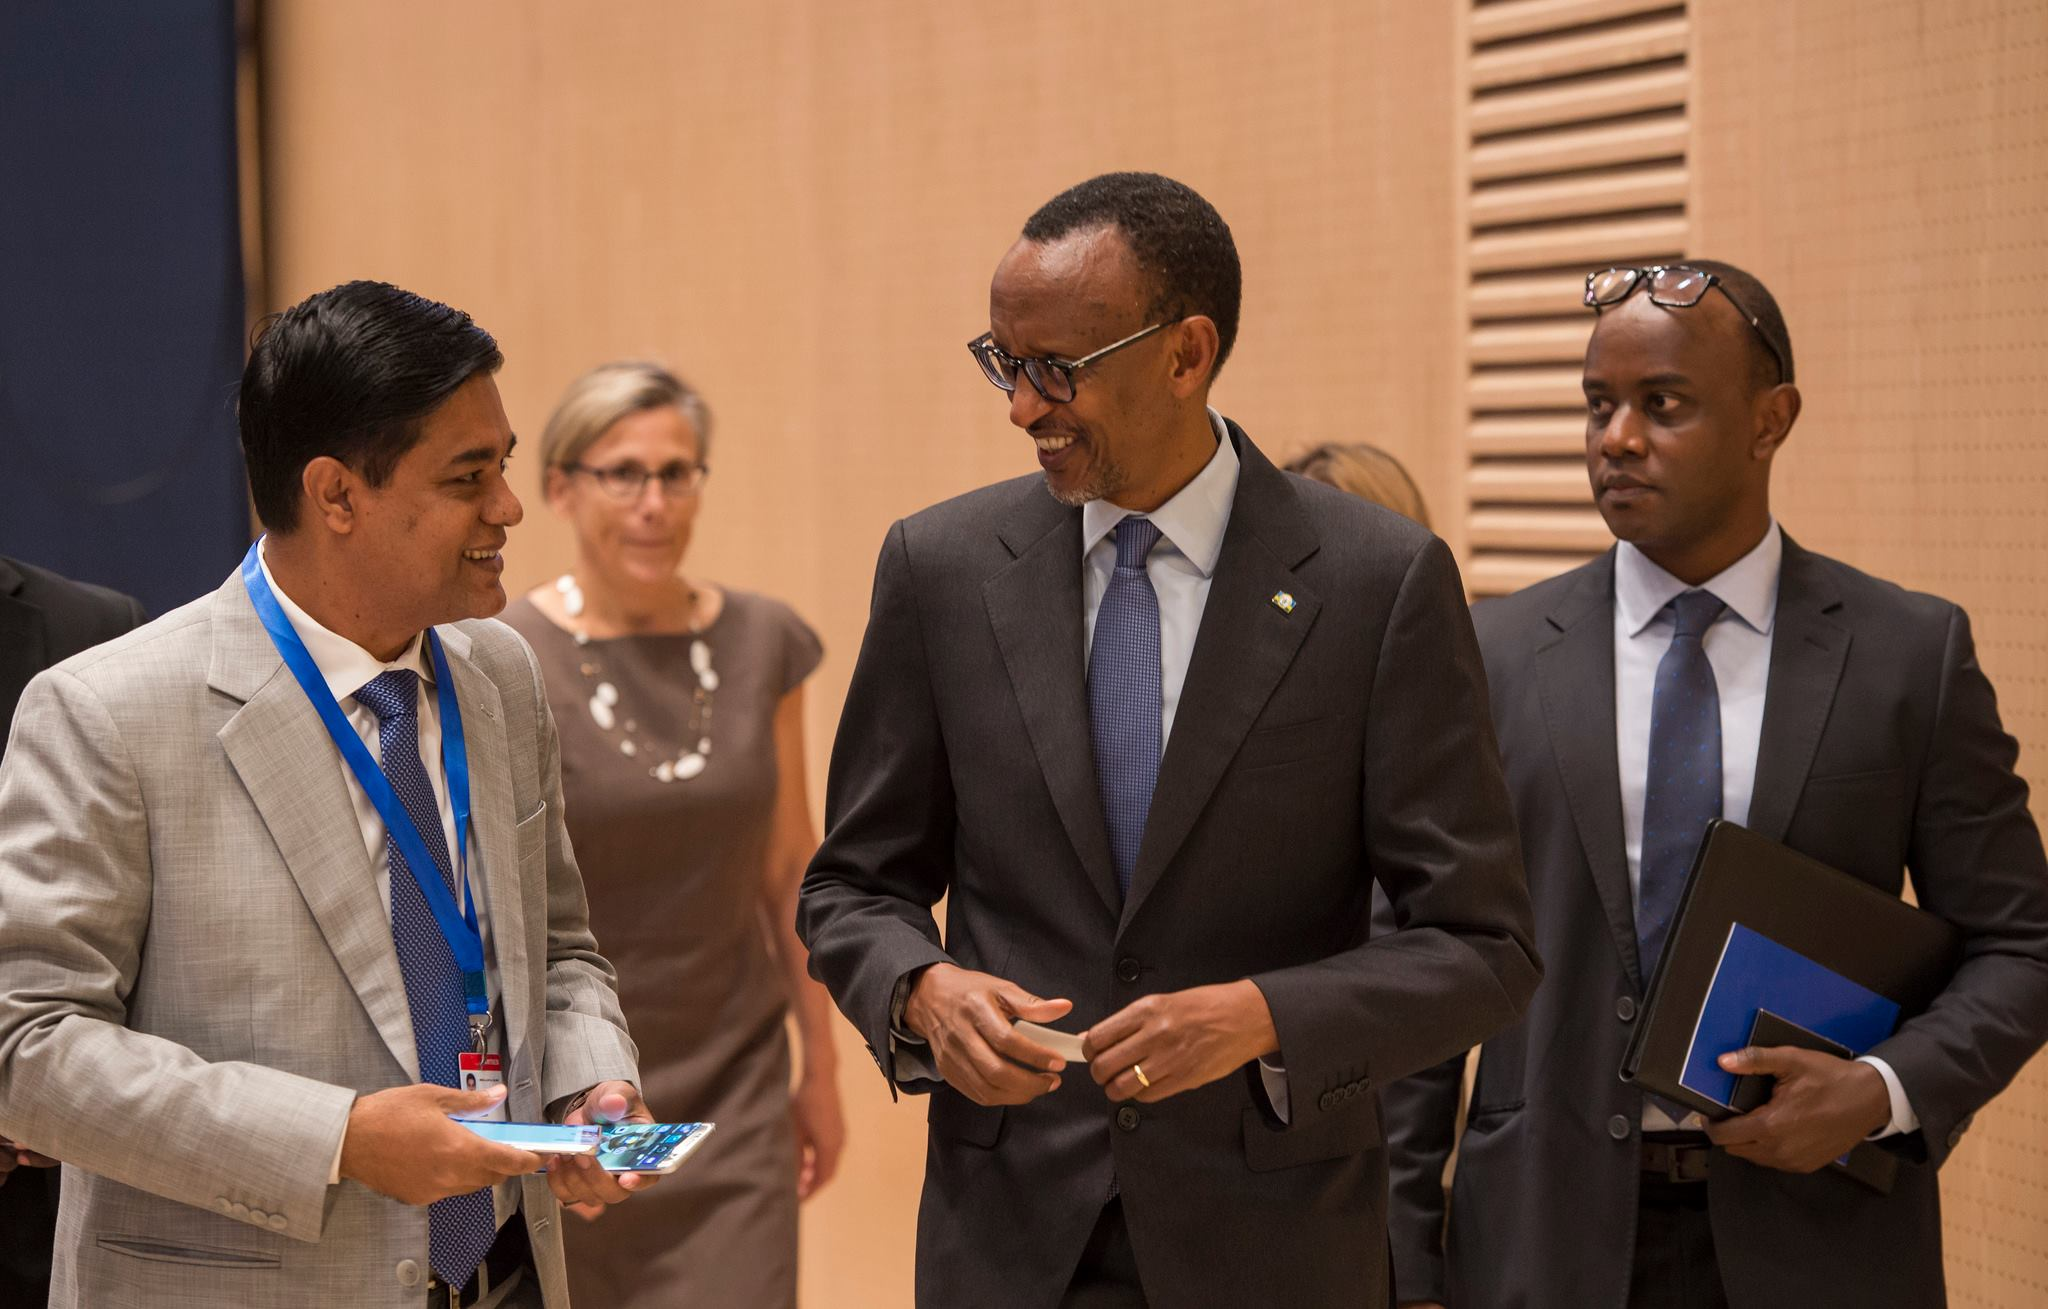 President Paul Kagame (right) with some delegates at the historic conference / © PK